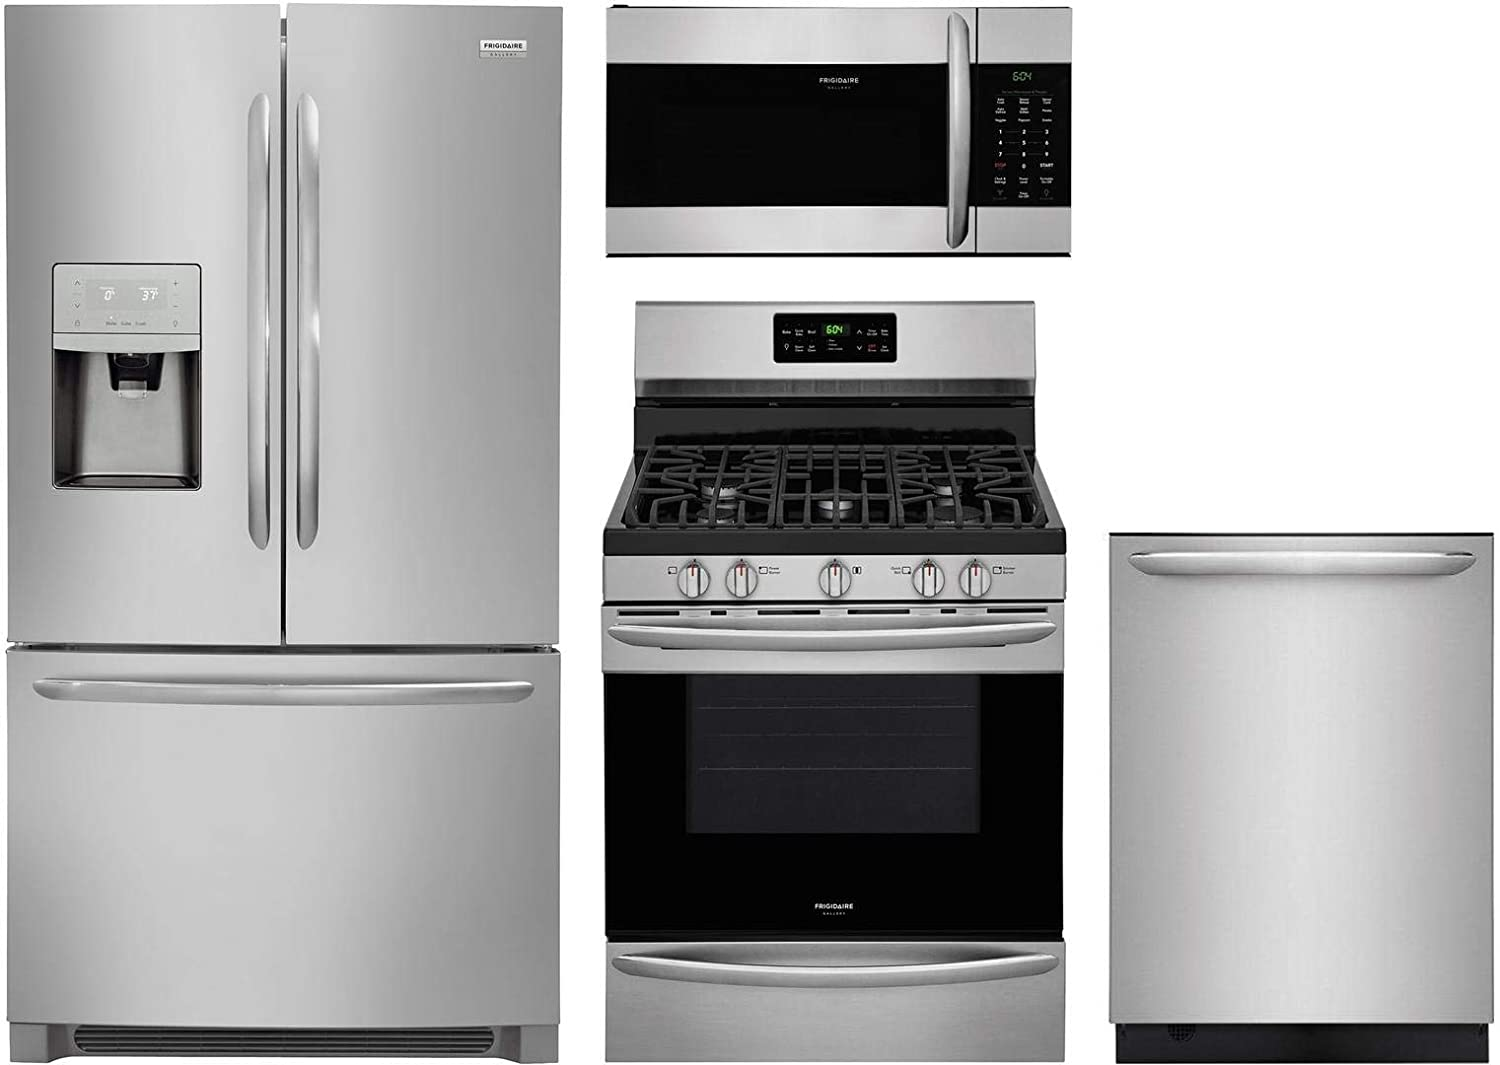 """Frigidaire 4 Piece Kitchen Appliance Package with FGHB2868TF 36"""" French Door Refrigerator FGGF3036TF 30"""" Gas Range FGMV176NTF 30"""" Over the Range Microwave and FGID2479SF 24"""" Built In Dishwasher in Stainless Steel"""